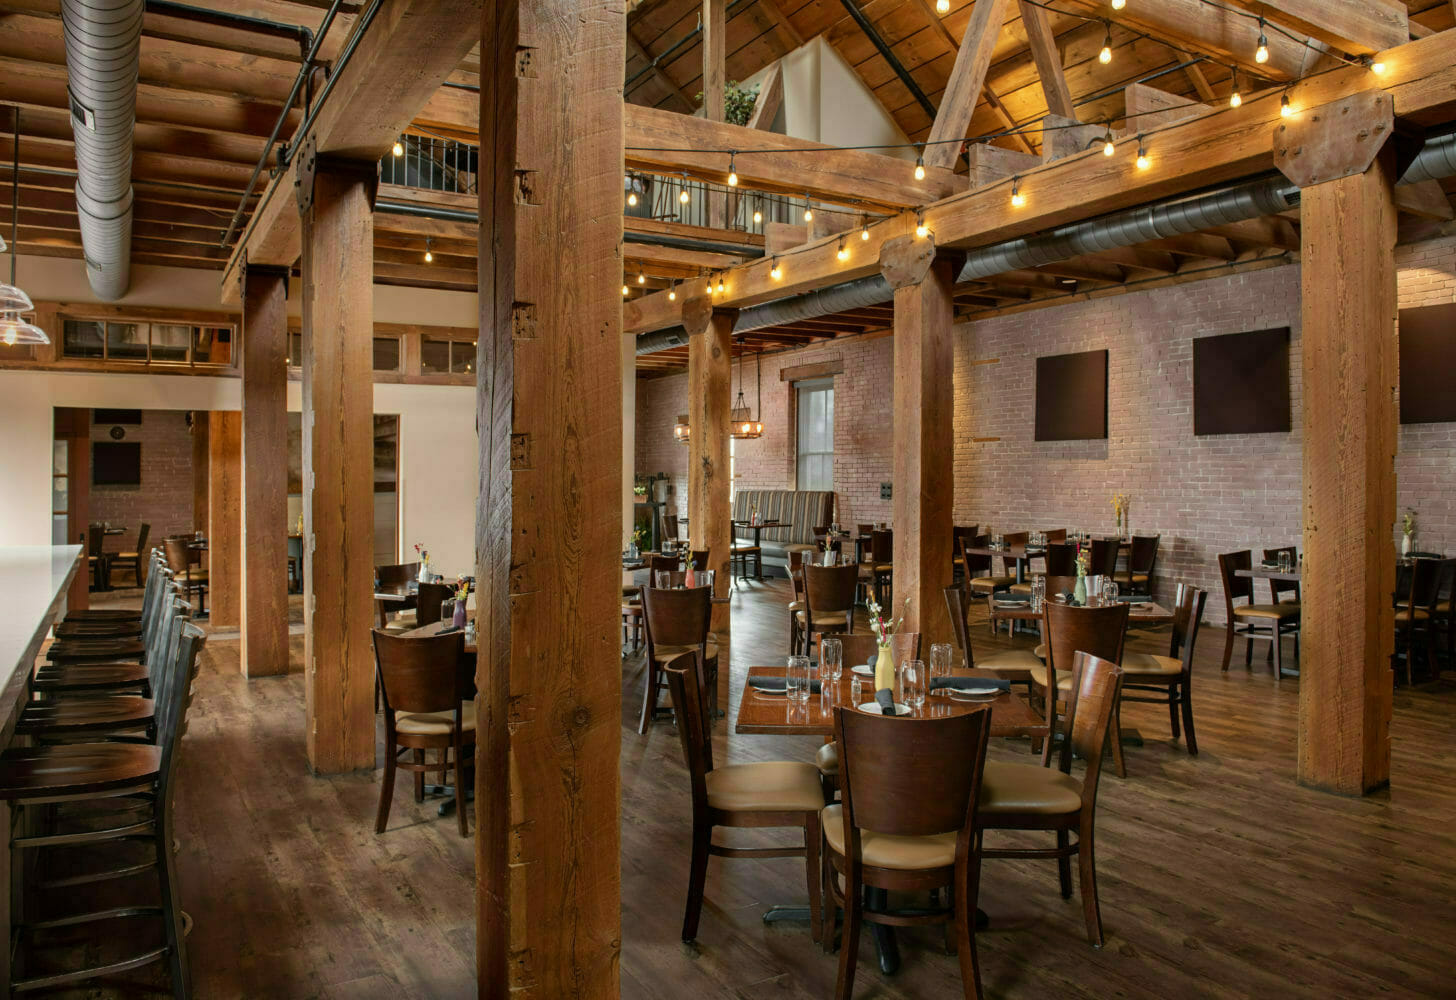 Private Parties at the Mill in Hershey | The Third Floor